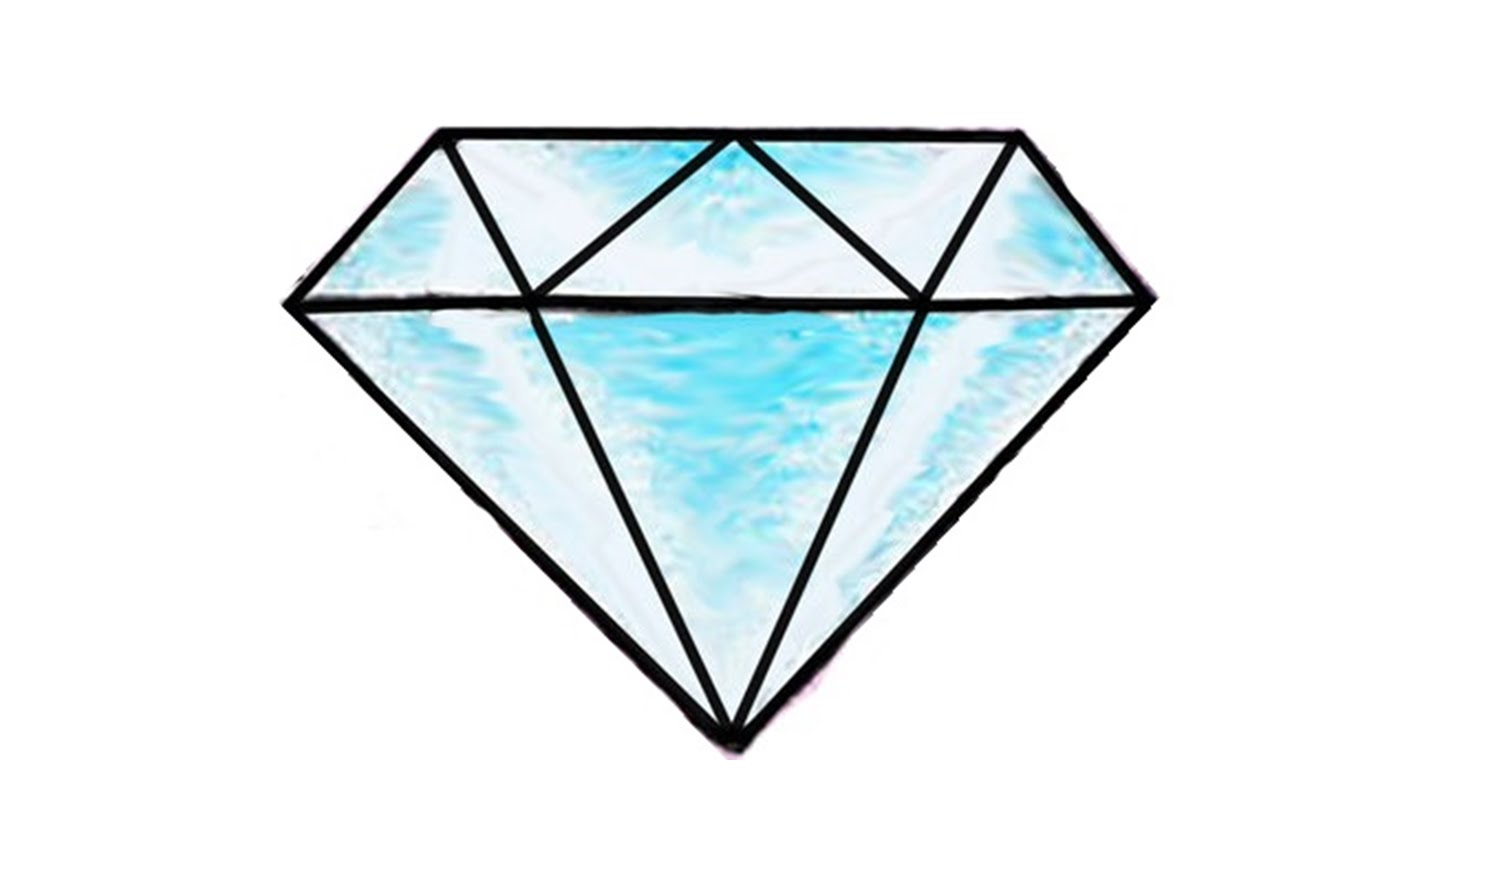 Diamond clipart easy (easy) to YouTube How Draw